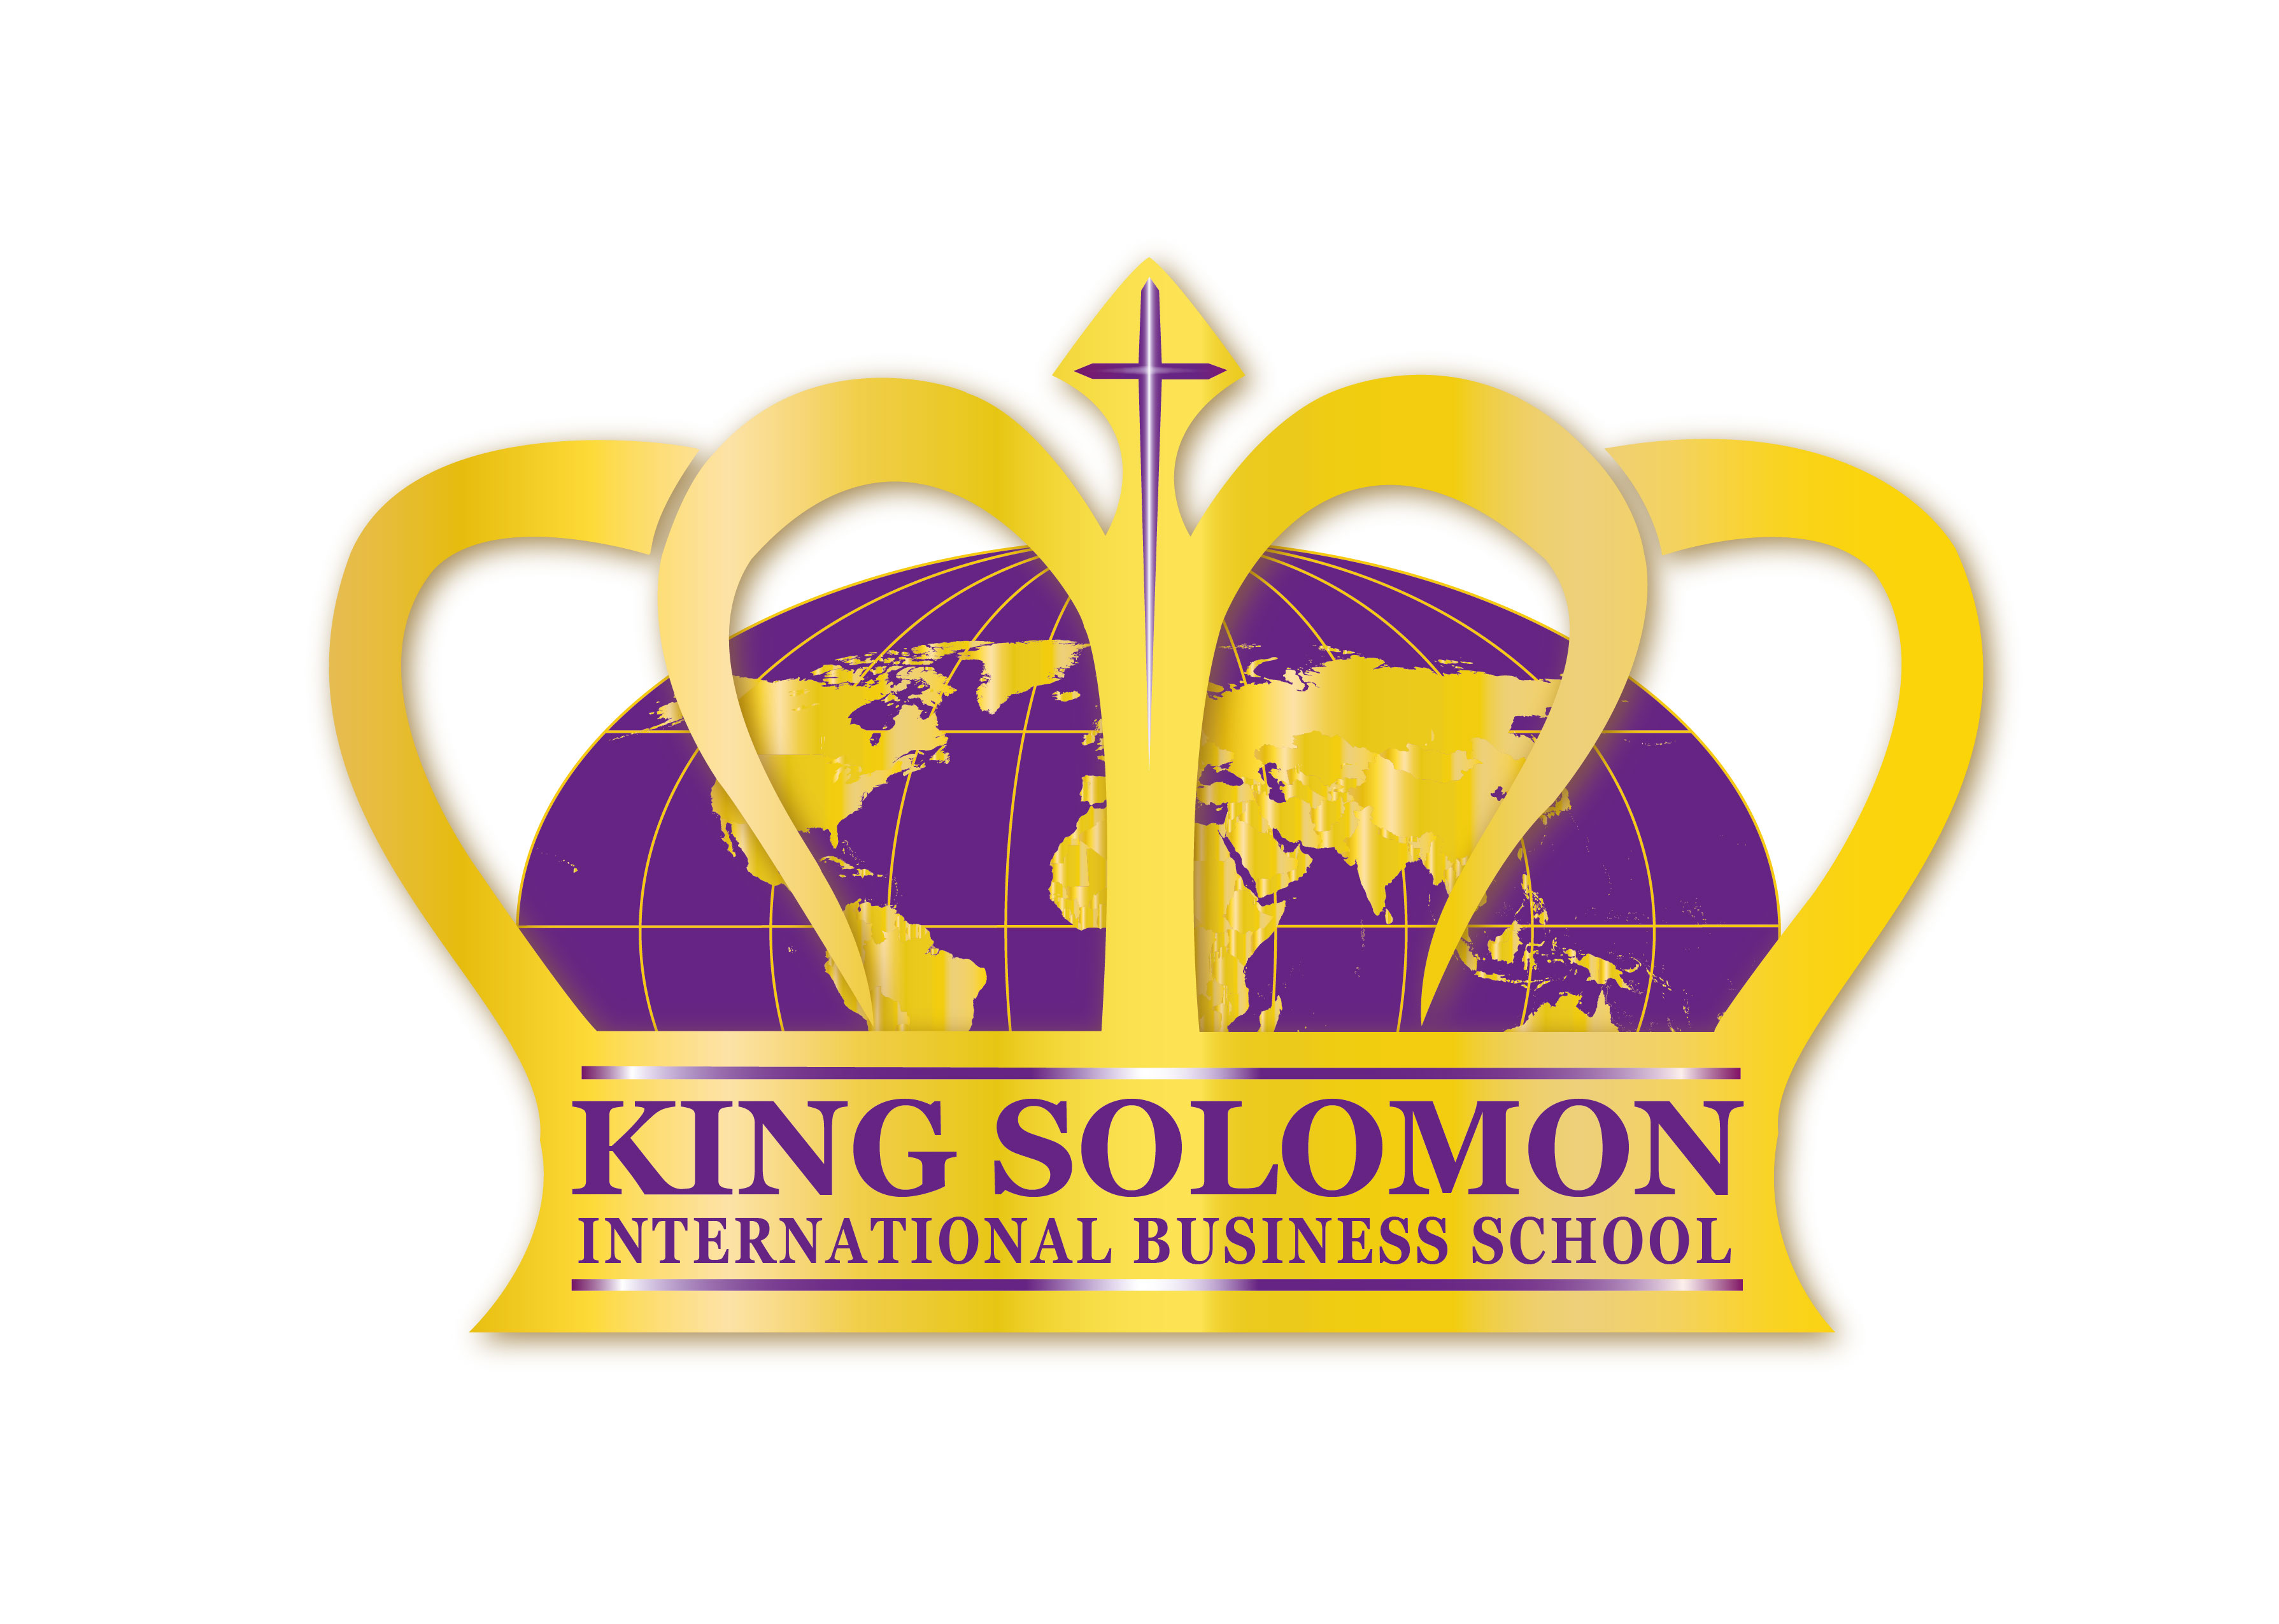 King Solomon International Business School – Primary